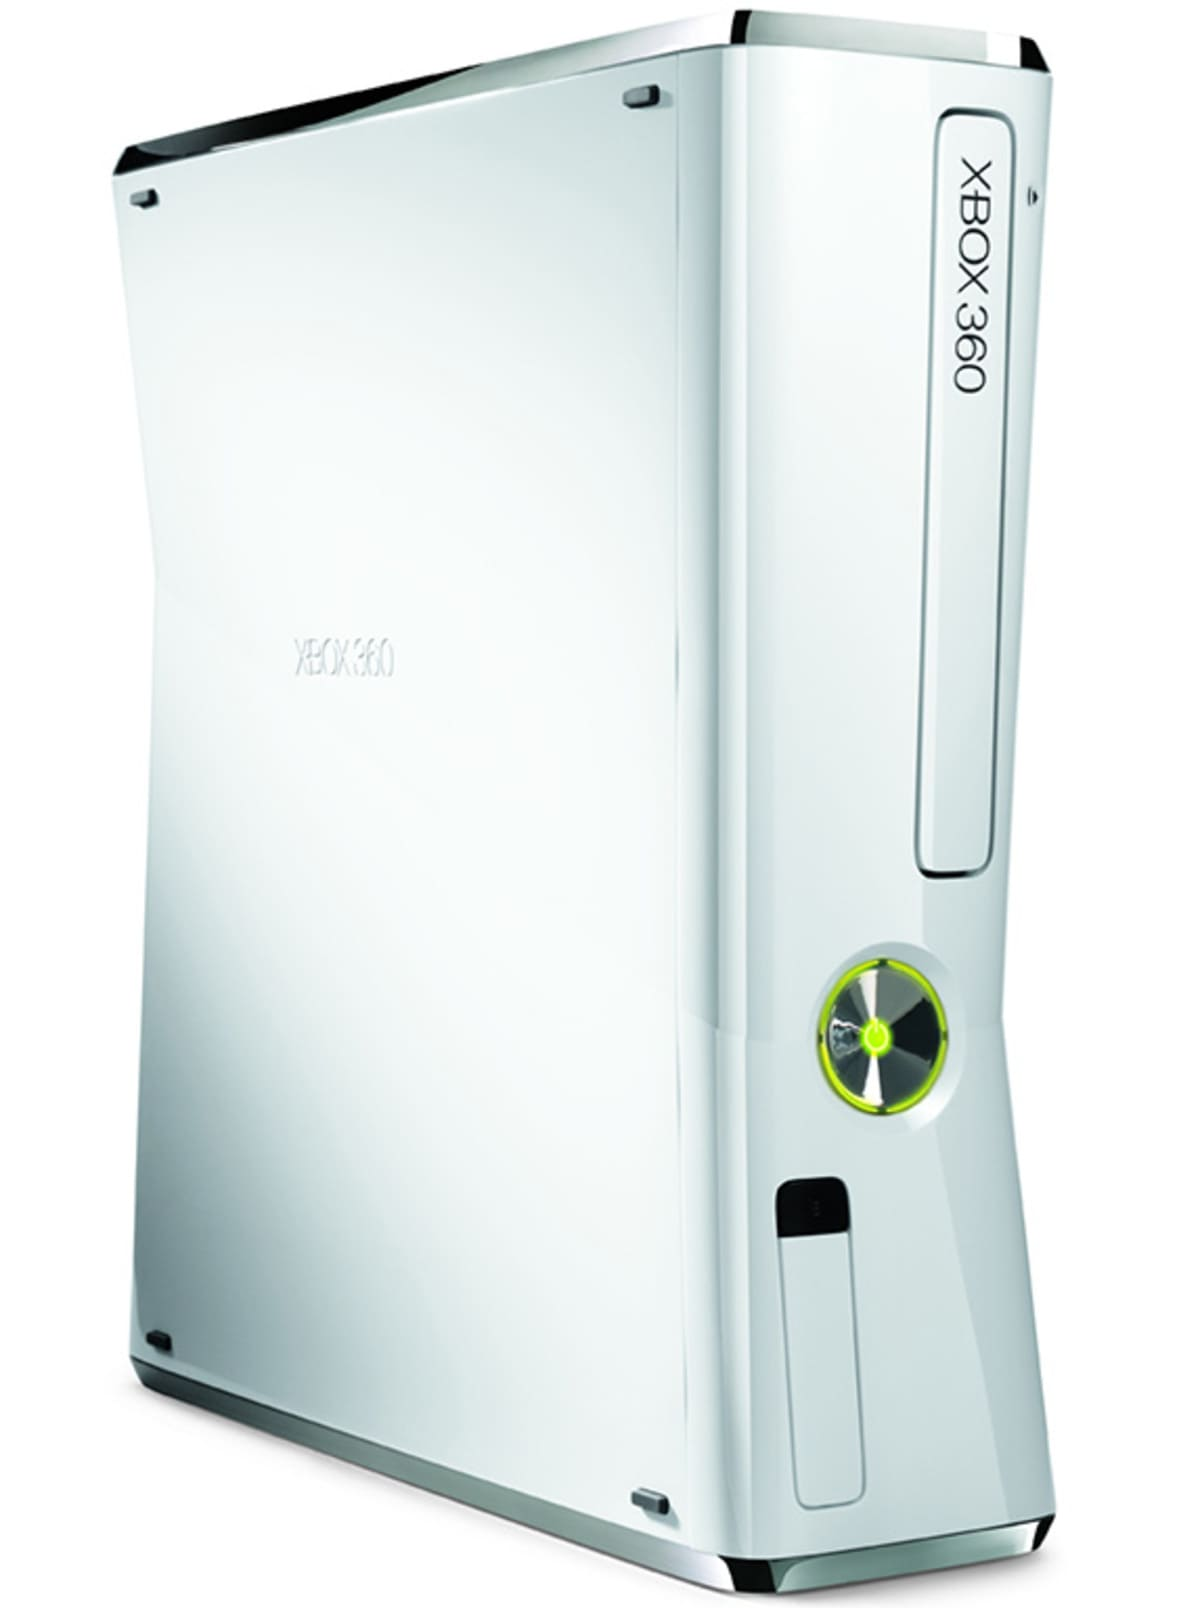 Xbox 360 y Kinect en color blanco (2)